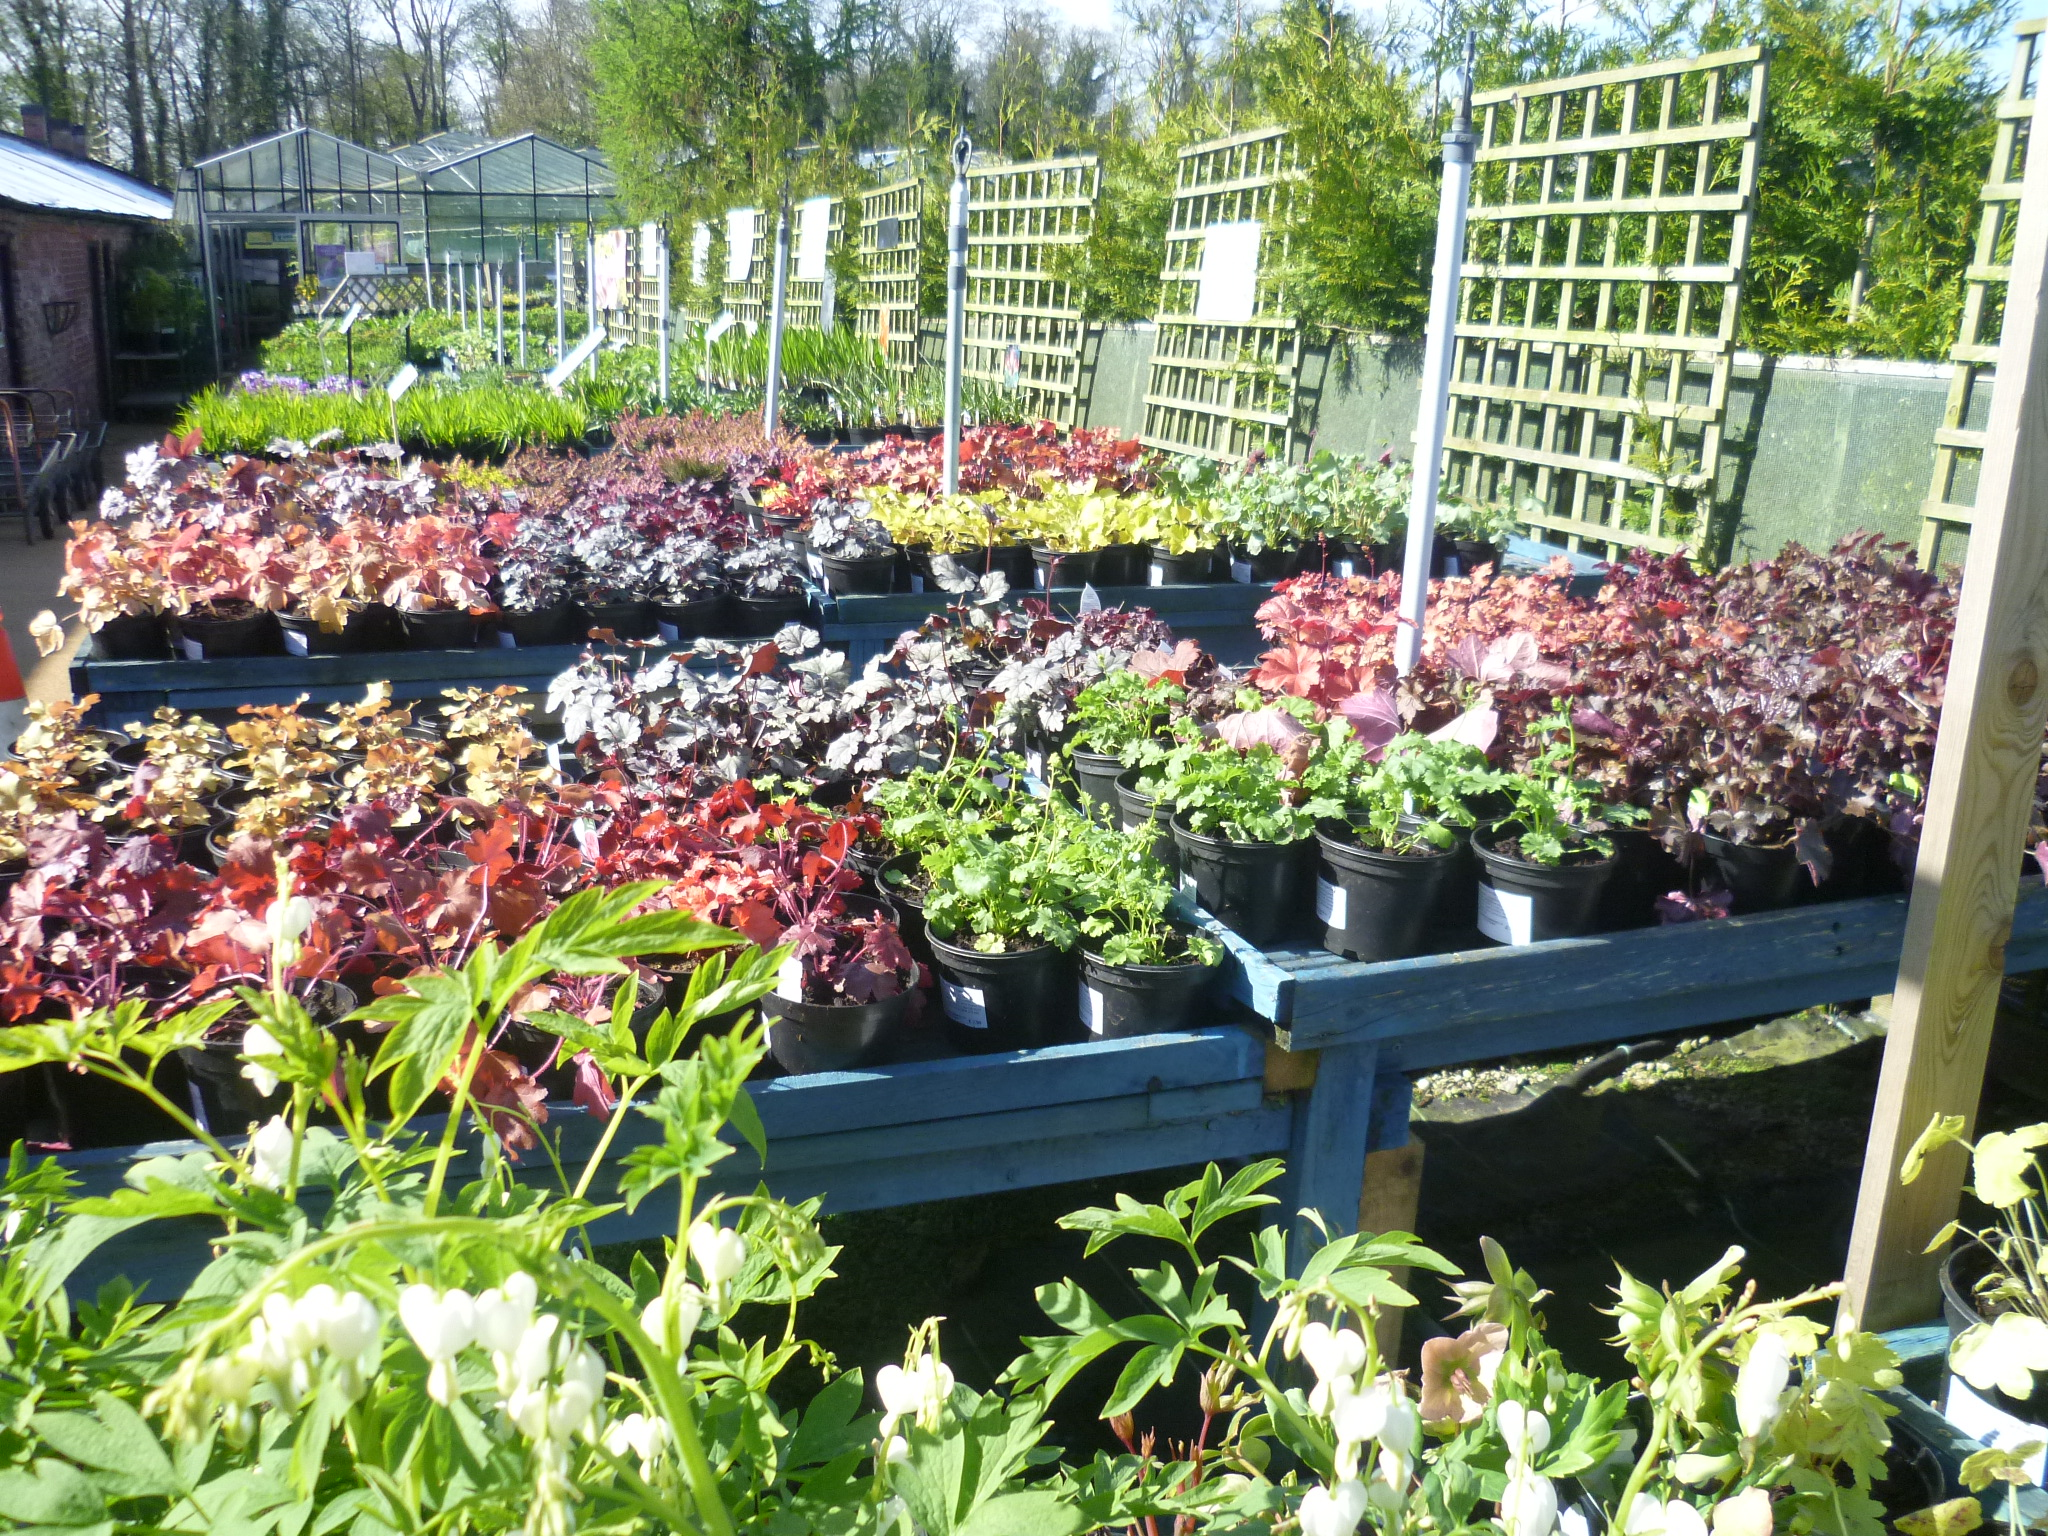 We Are A Family Run Traditional Nursery Stocking Huge Variety Of High Quality Plants And Garden